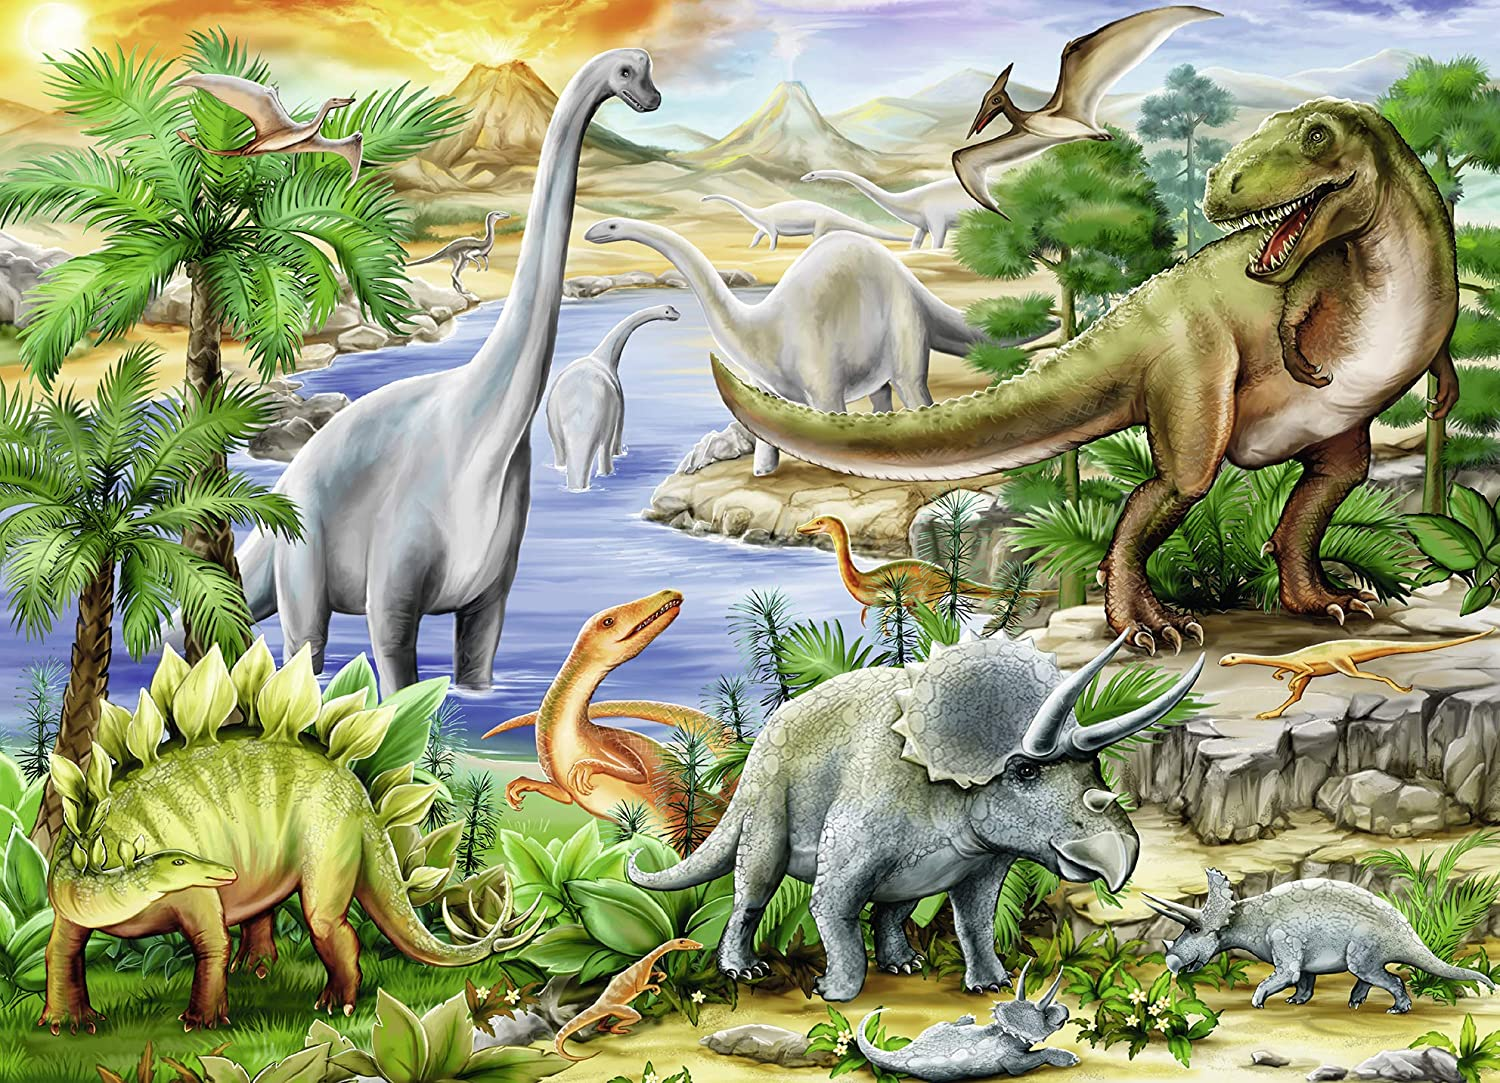 Ravensburger Prehistoric Life 60 Piece Jigsaw Puzzle for Kids – Every Piece is Unique, Pieces Fit Together Perfectly